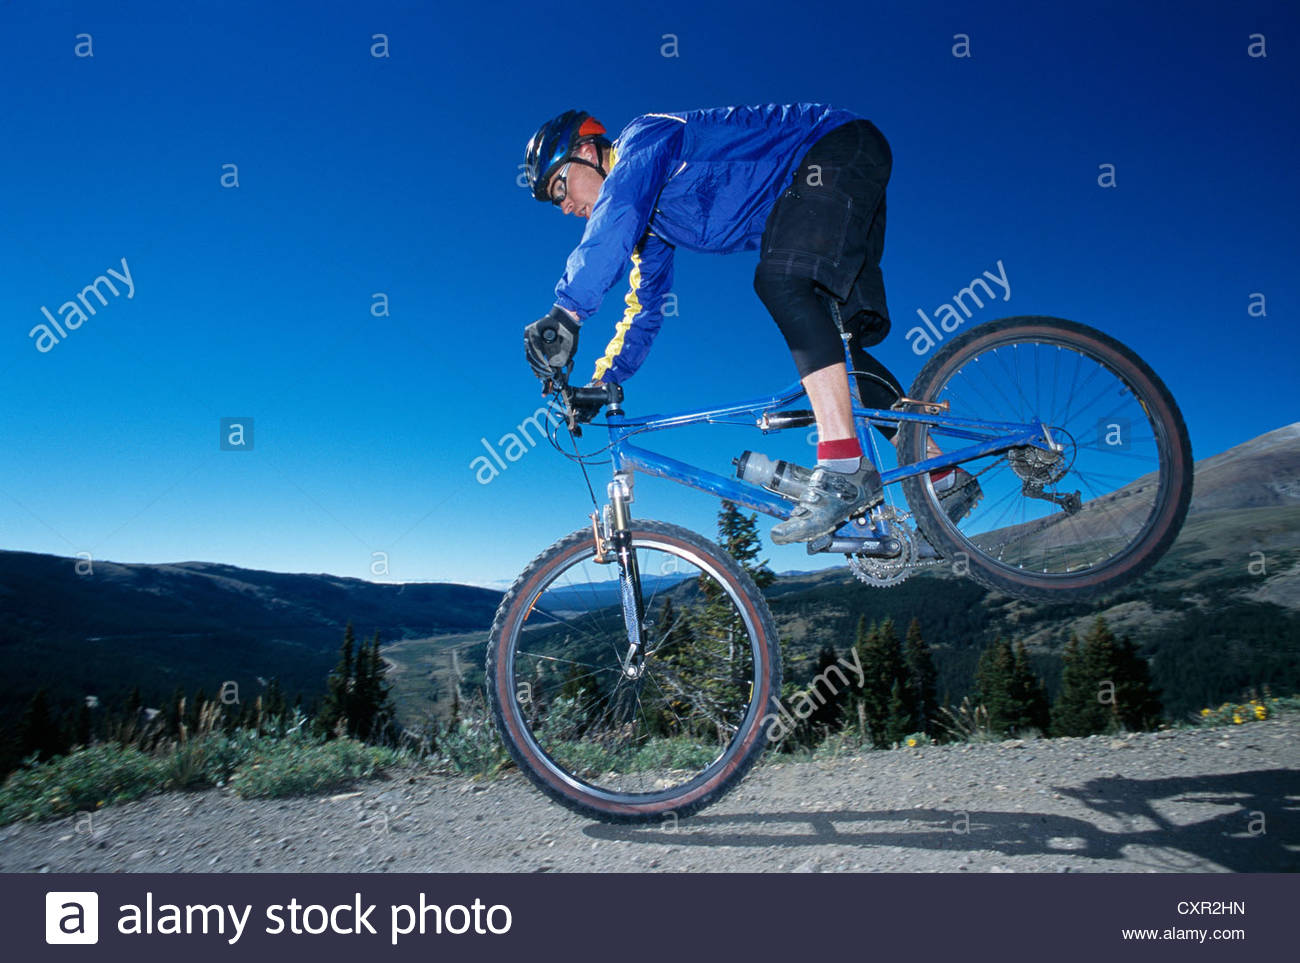 Mountainbiker in Aktion, Breckenridge, Colorado, USA Stockbild